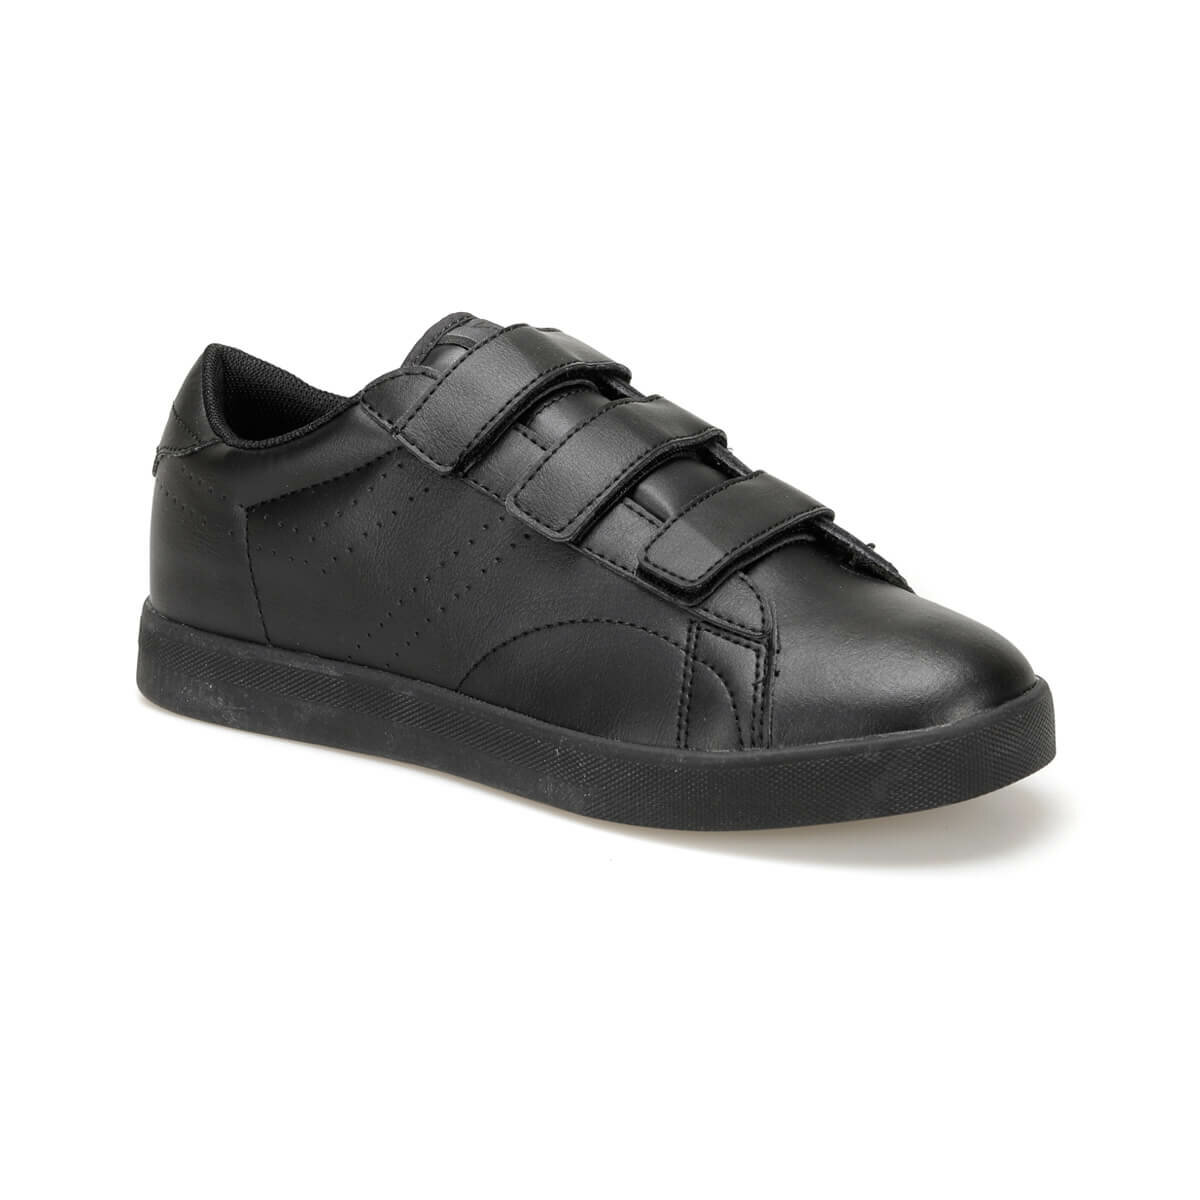 FLO SUPREM VELCRO M Black Men 'S Sneaker Shoes KINETIX